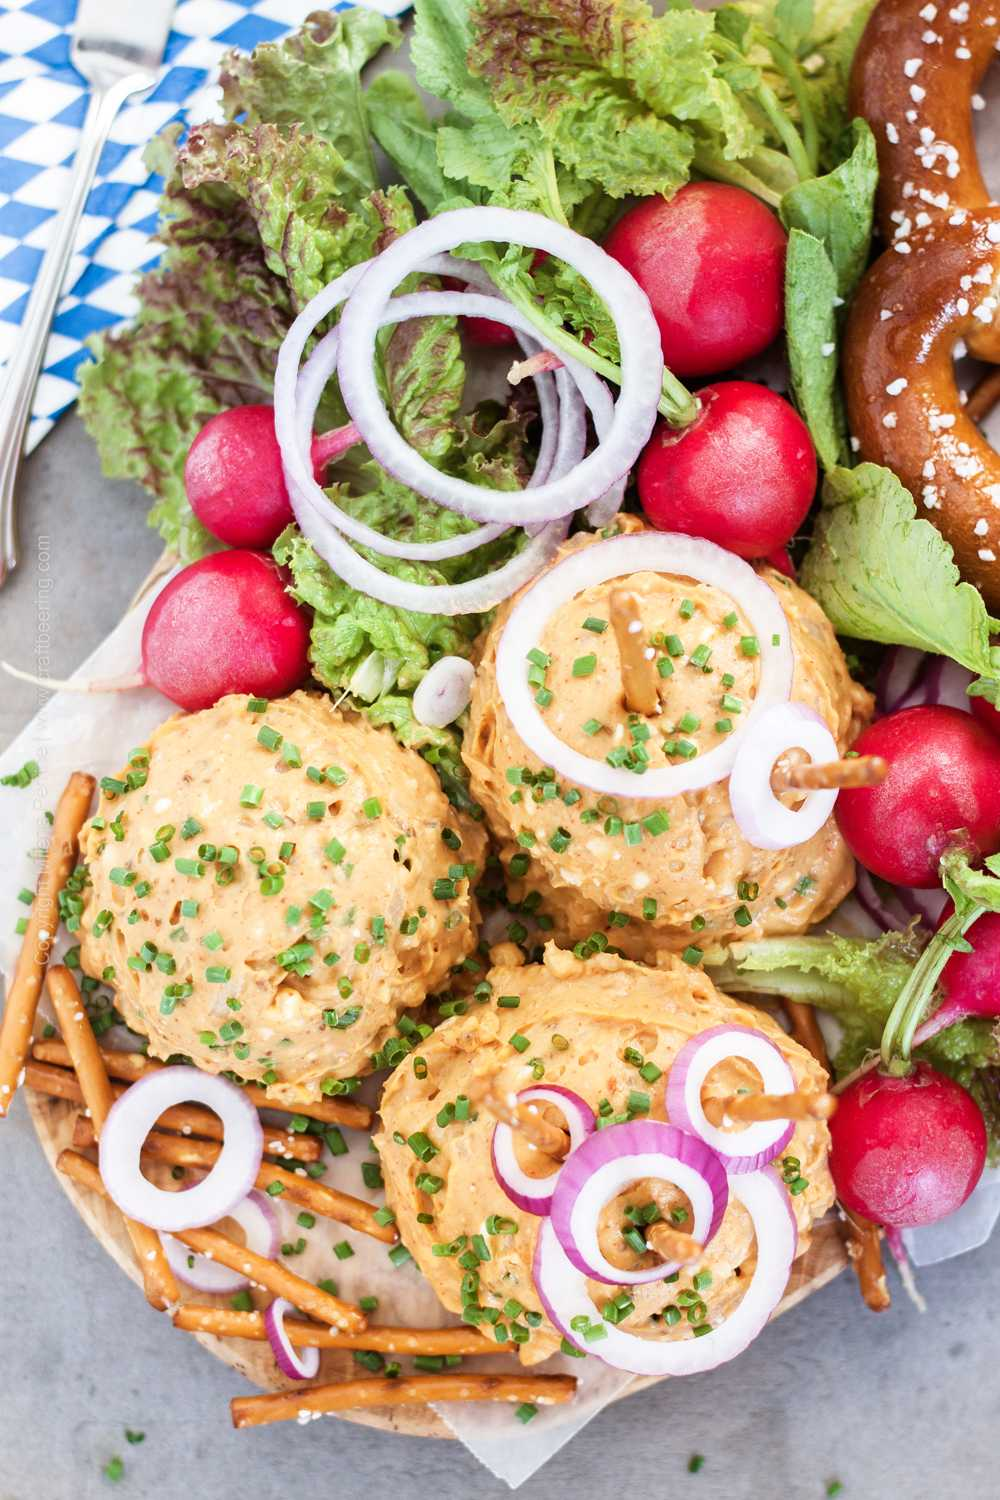 Hofbrauhaus beer cheese recipe. Presentation of obazda dip with fresh veggies and soft pretzels.